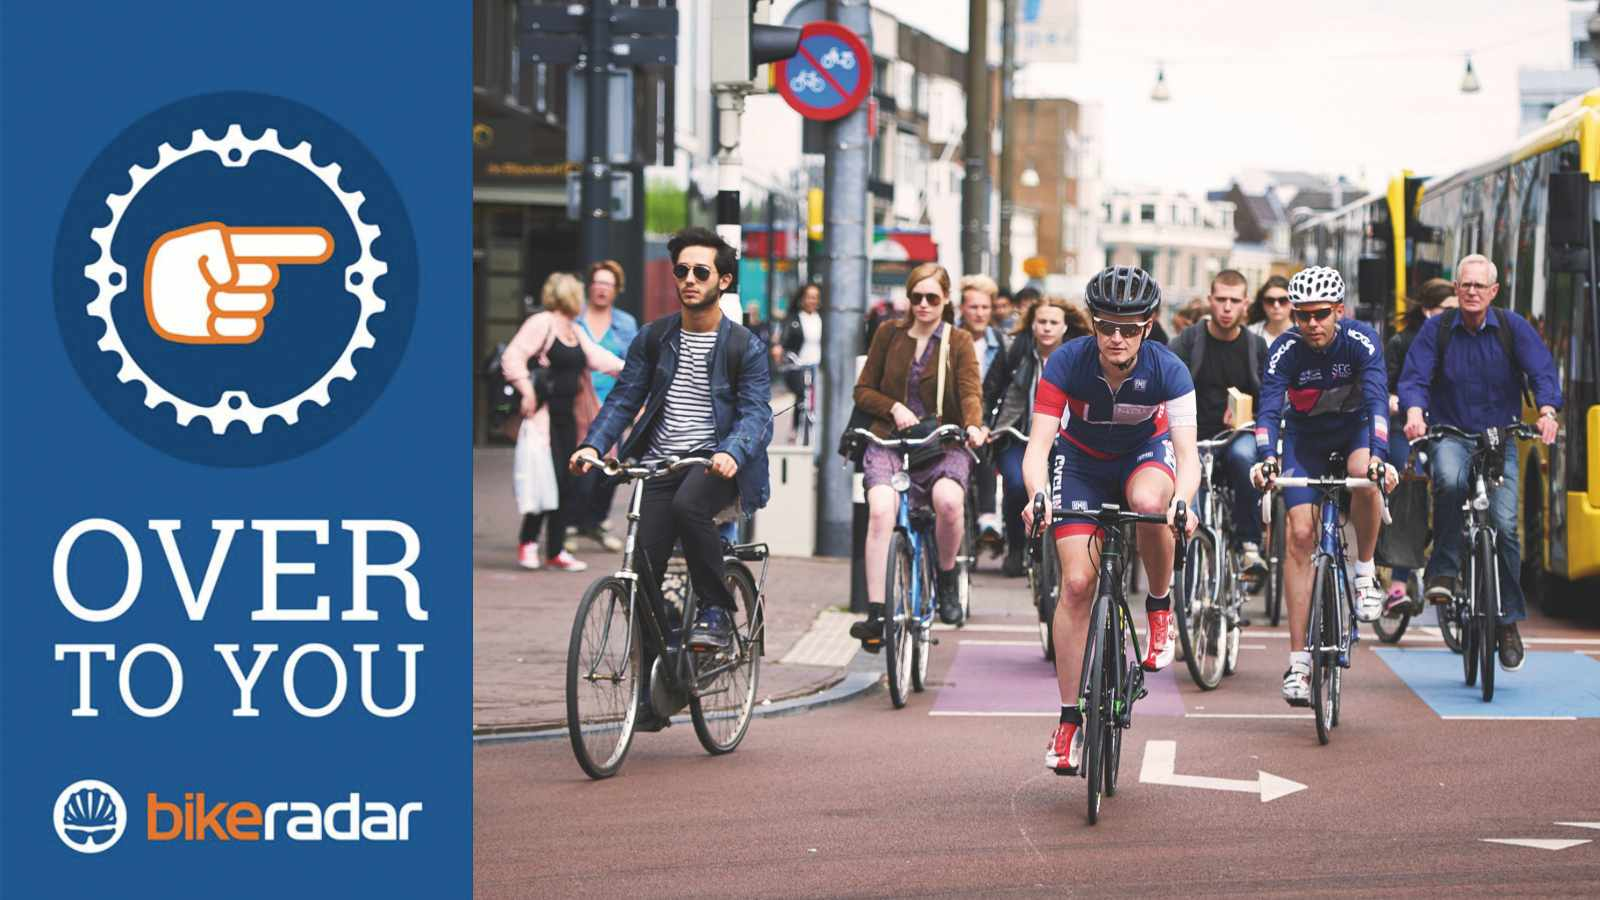 What are your top tips for commuting?